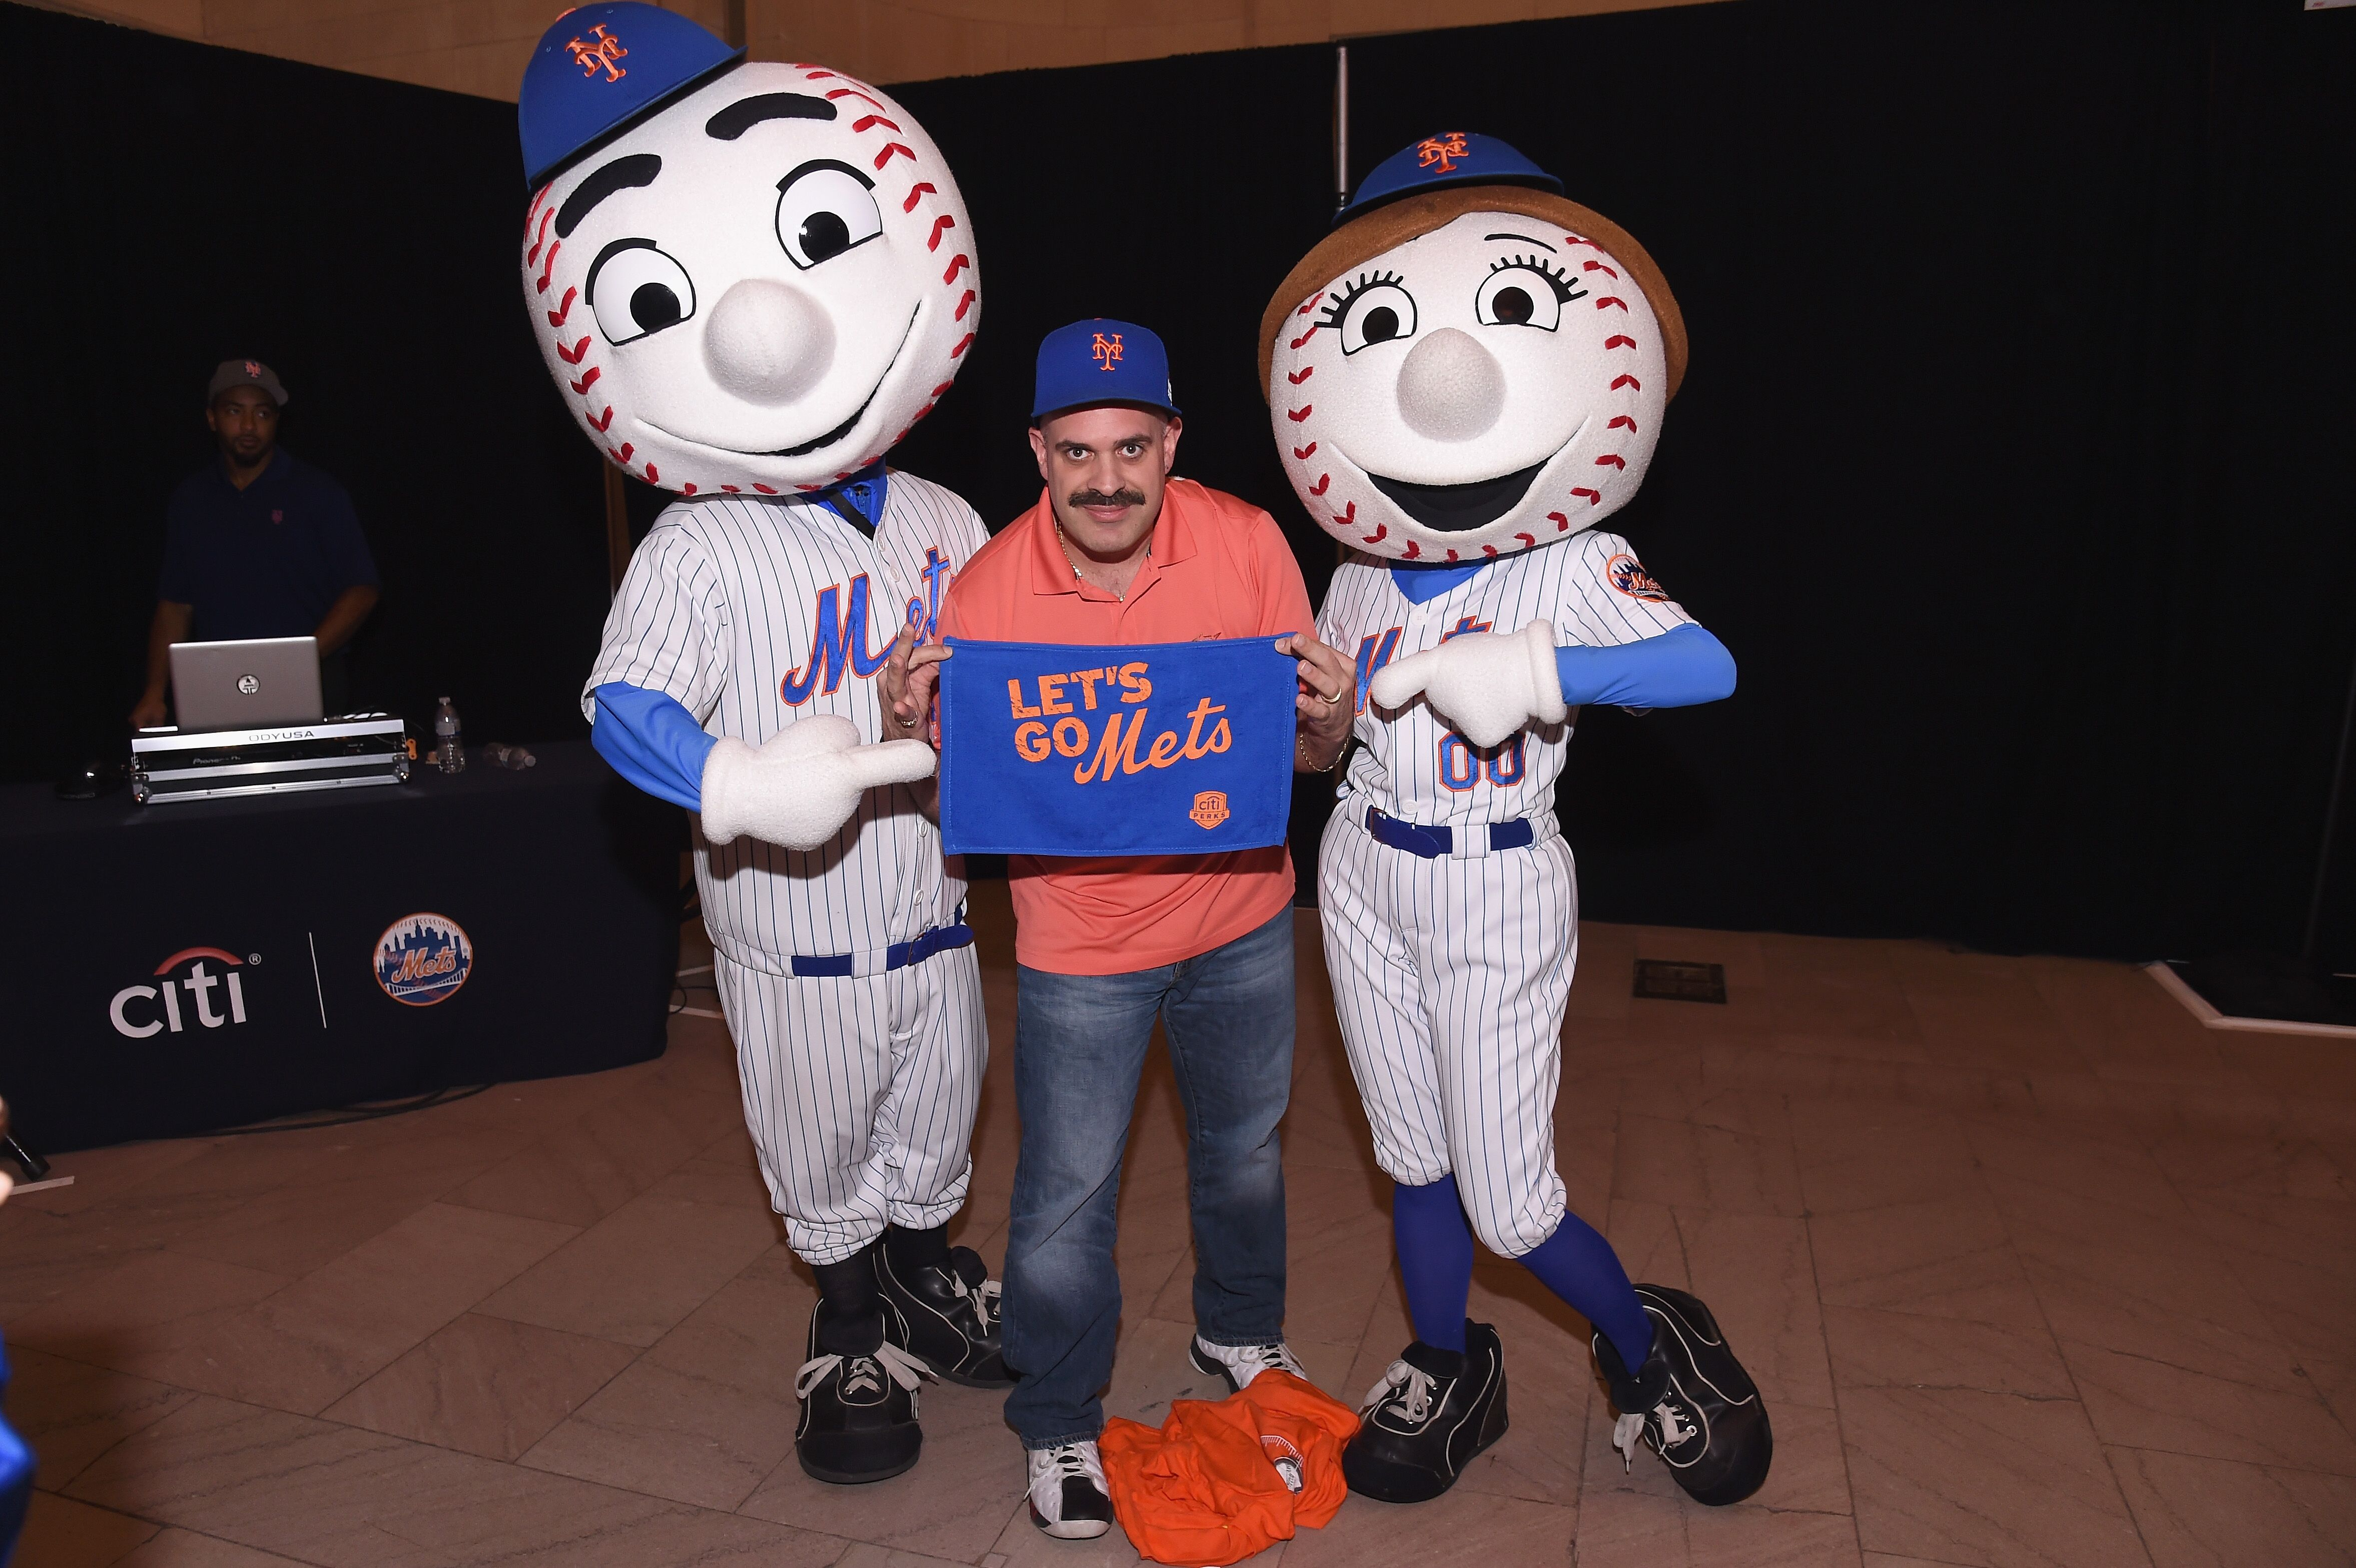 661734656-citi-celebrates-the-start-of-the-new-york-mets-season-with-the-lets-go-mets-fan-rally-at-grand-central-terminal.jpg